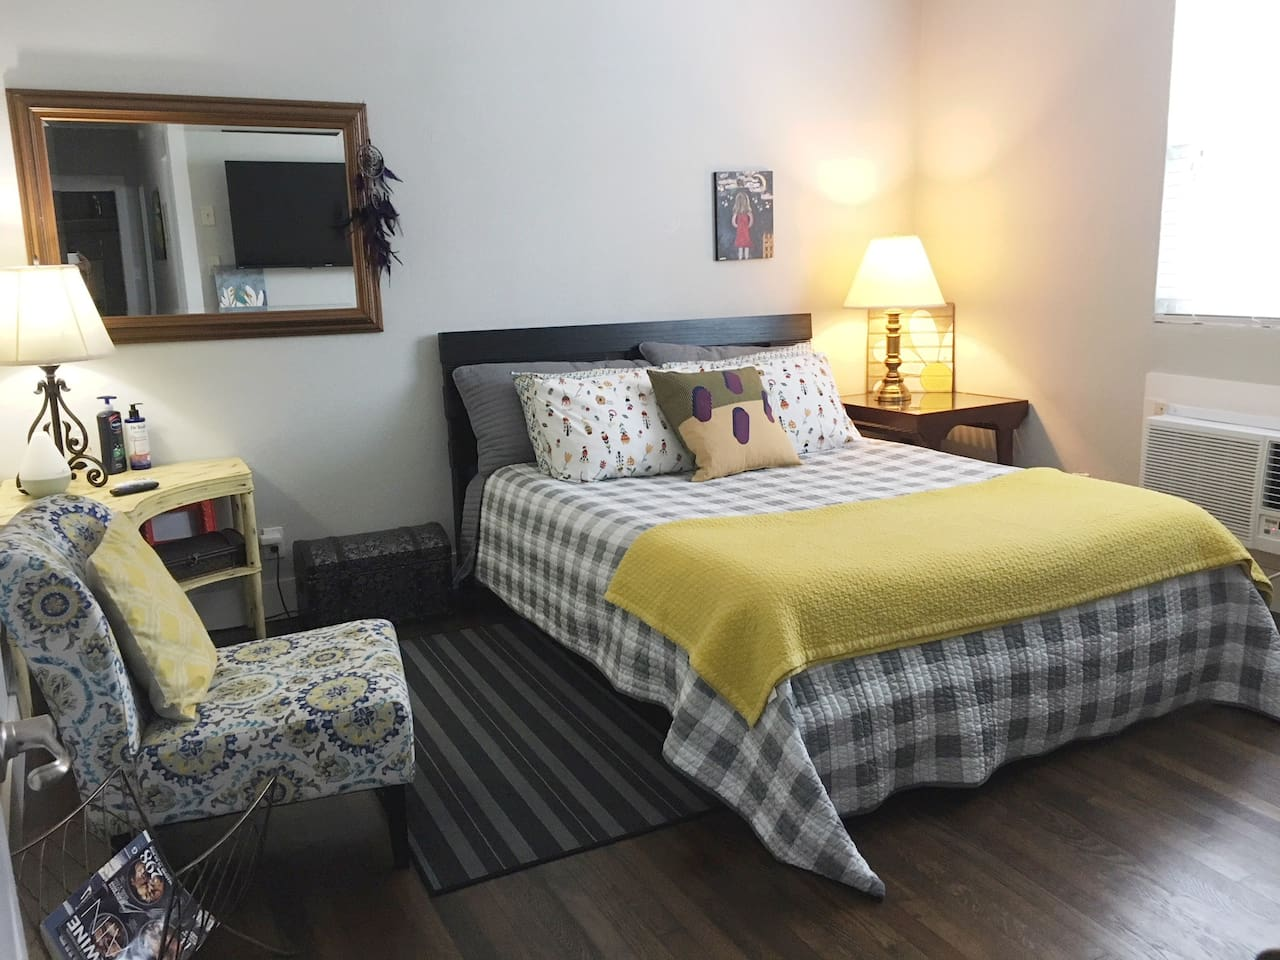 Welcome to the Sweet Suite and this delightful new queen size platform bed that sleeps like a dream!  Not enough space to describe all the handmade and original furniture and art.  But, Uncle Barney made the corner table some 40+ years ago...